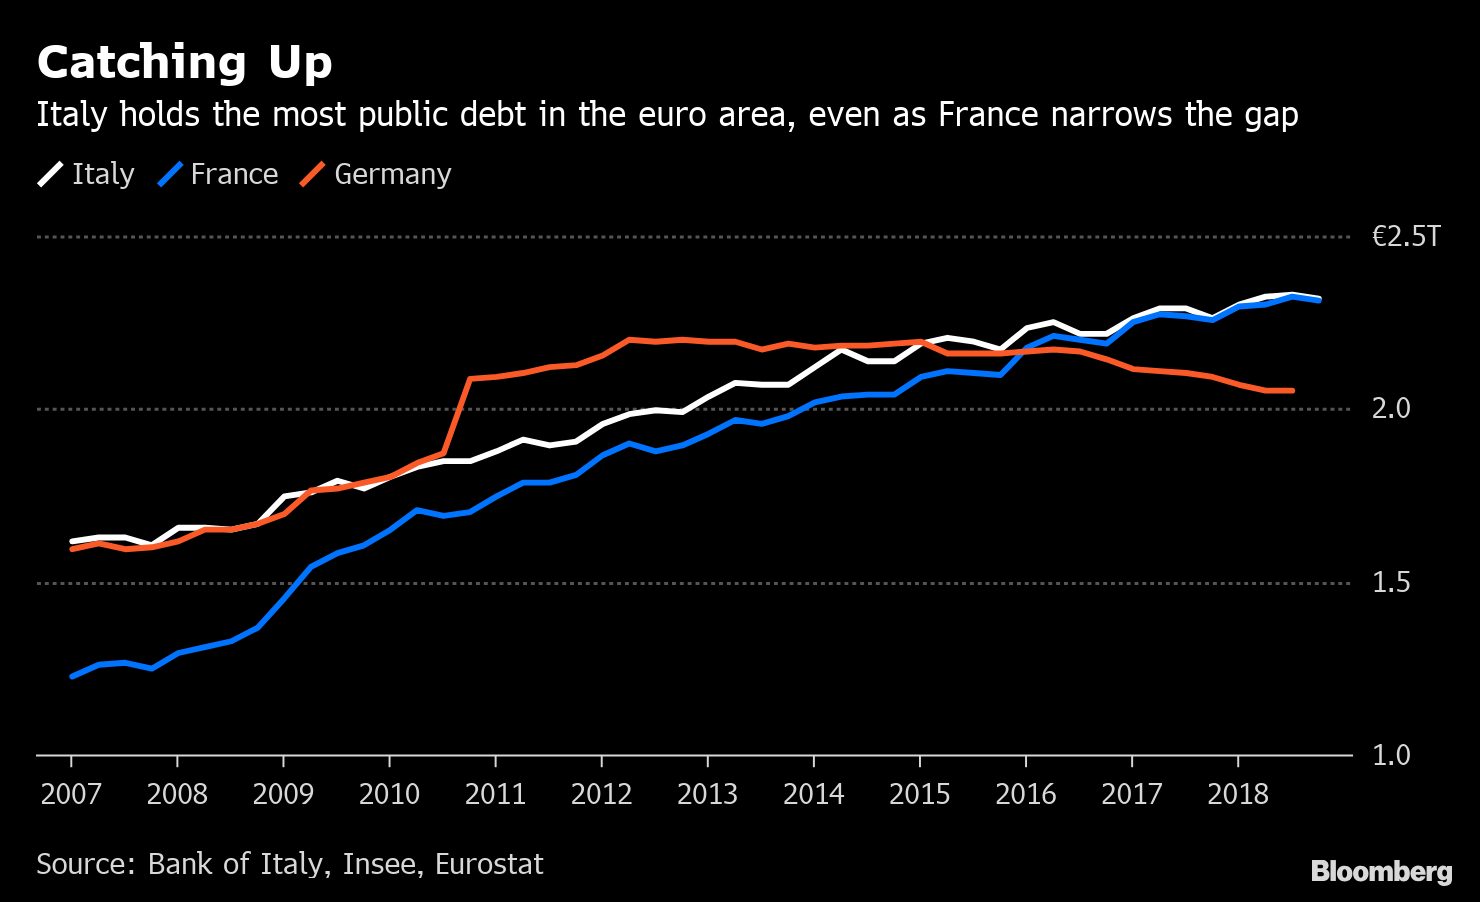 Public Debt - Italy vs. France and Germany